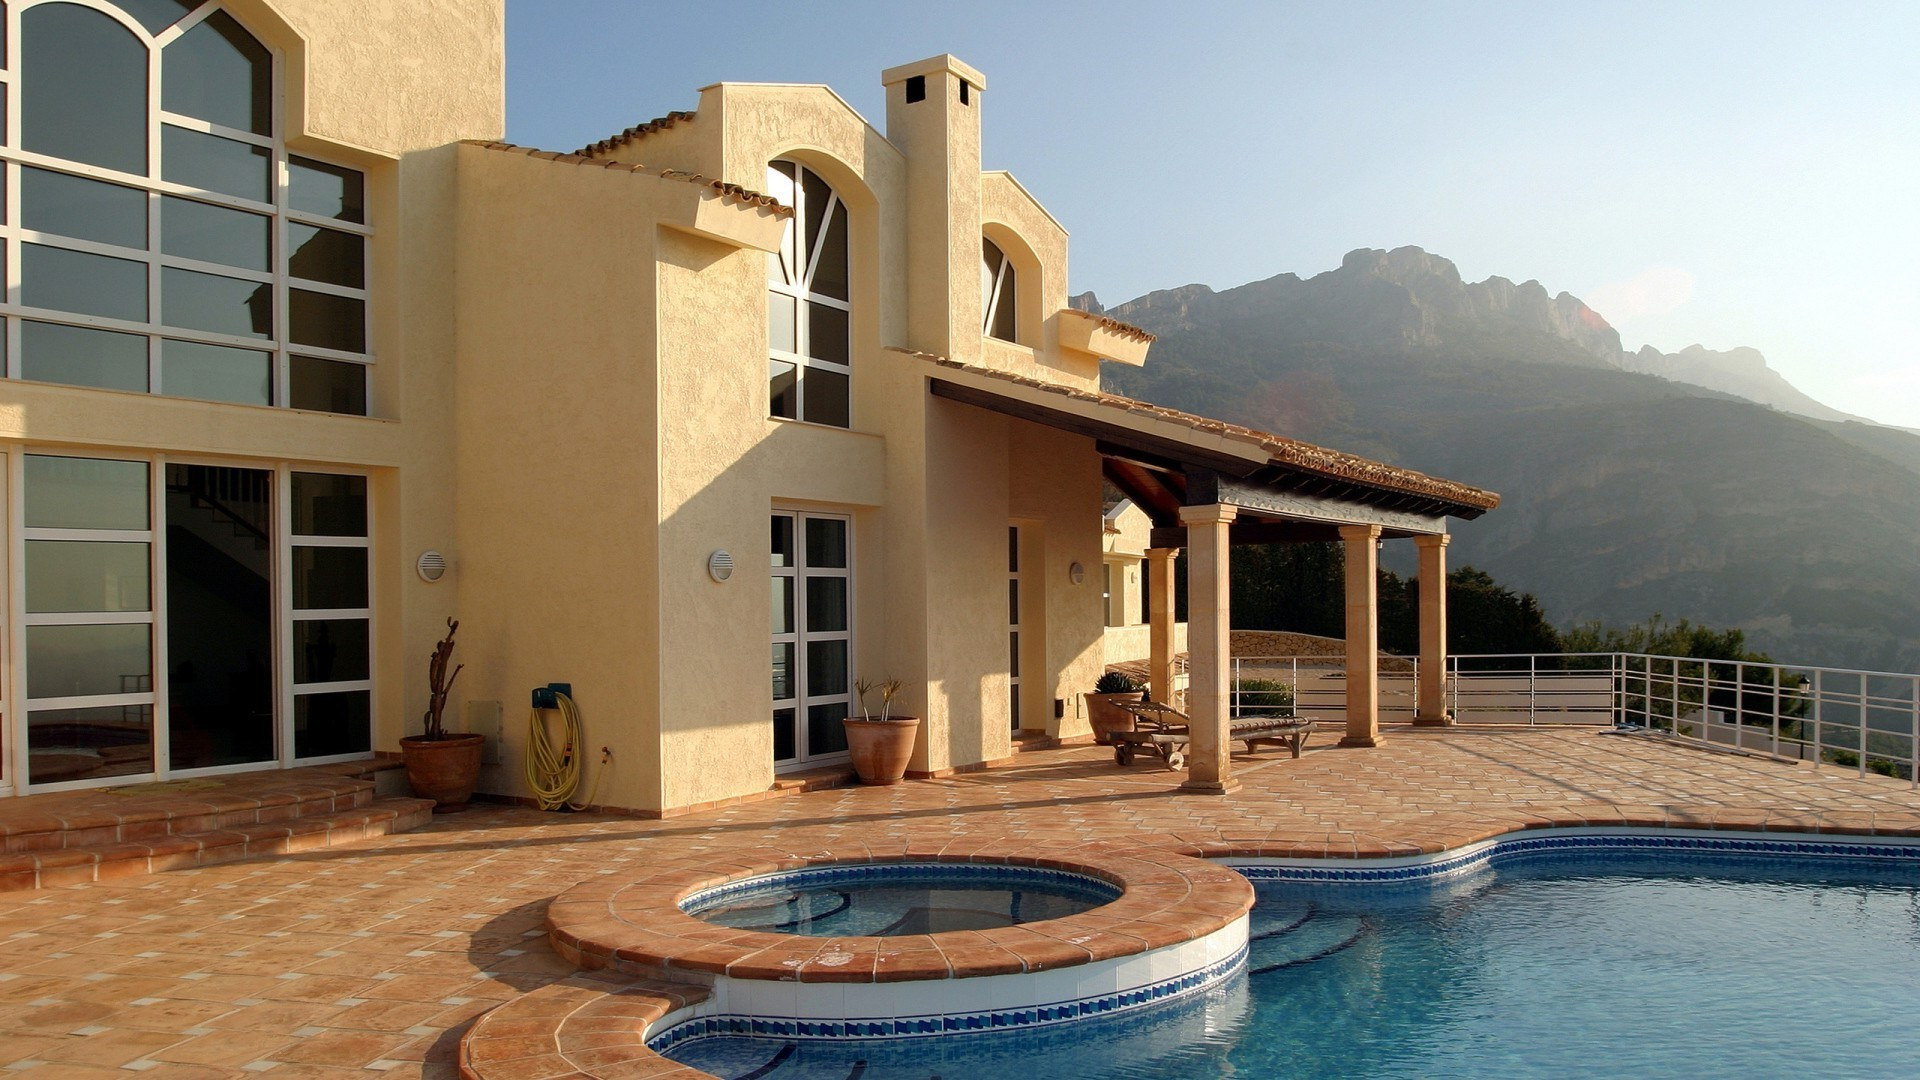 Villa with pool in the mountains